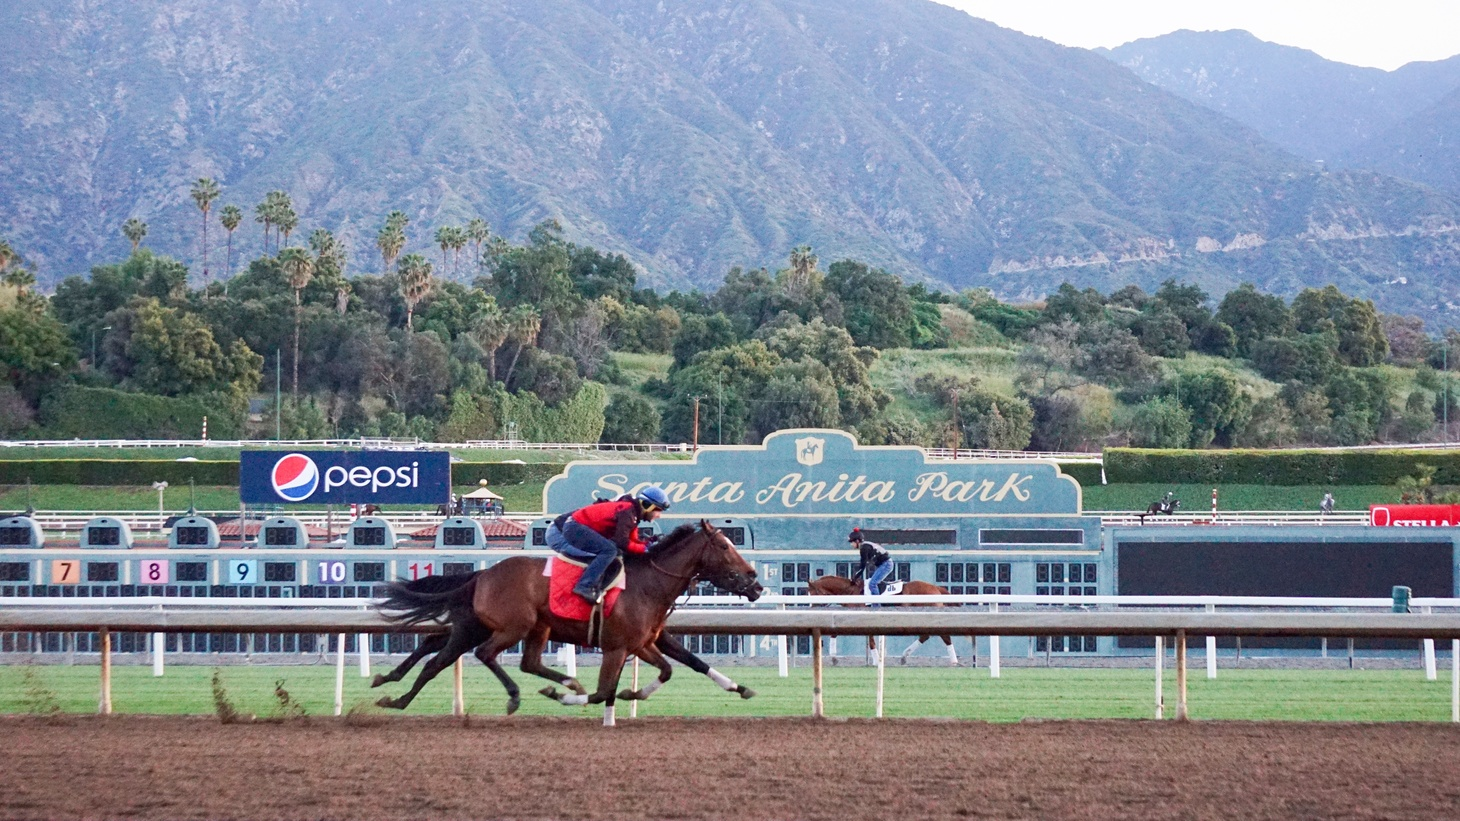 An early morning at the Santa Anita Race Track in May 2019.